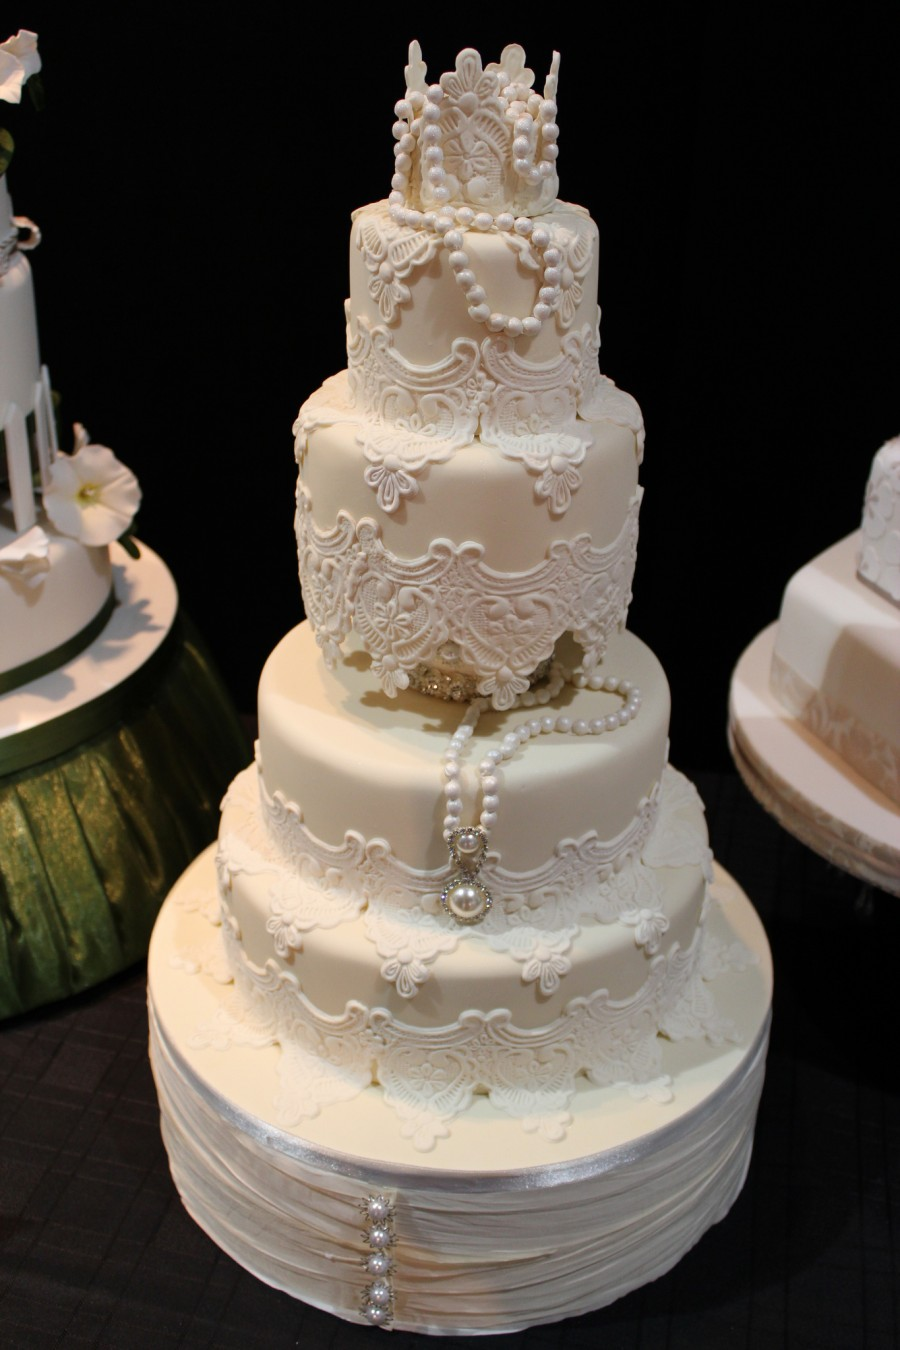 Top Wedding Cake - Lace Wedding Cake